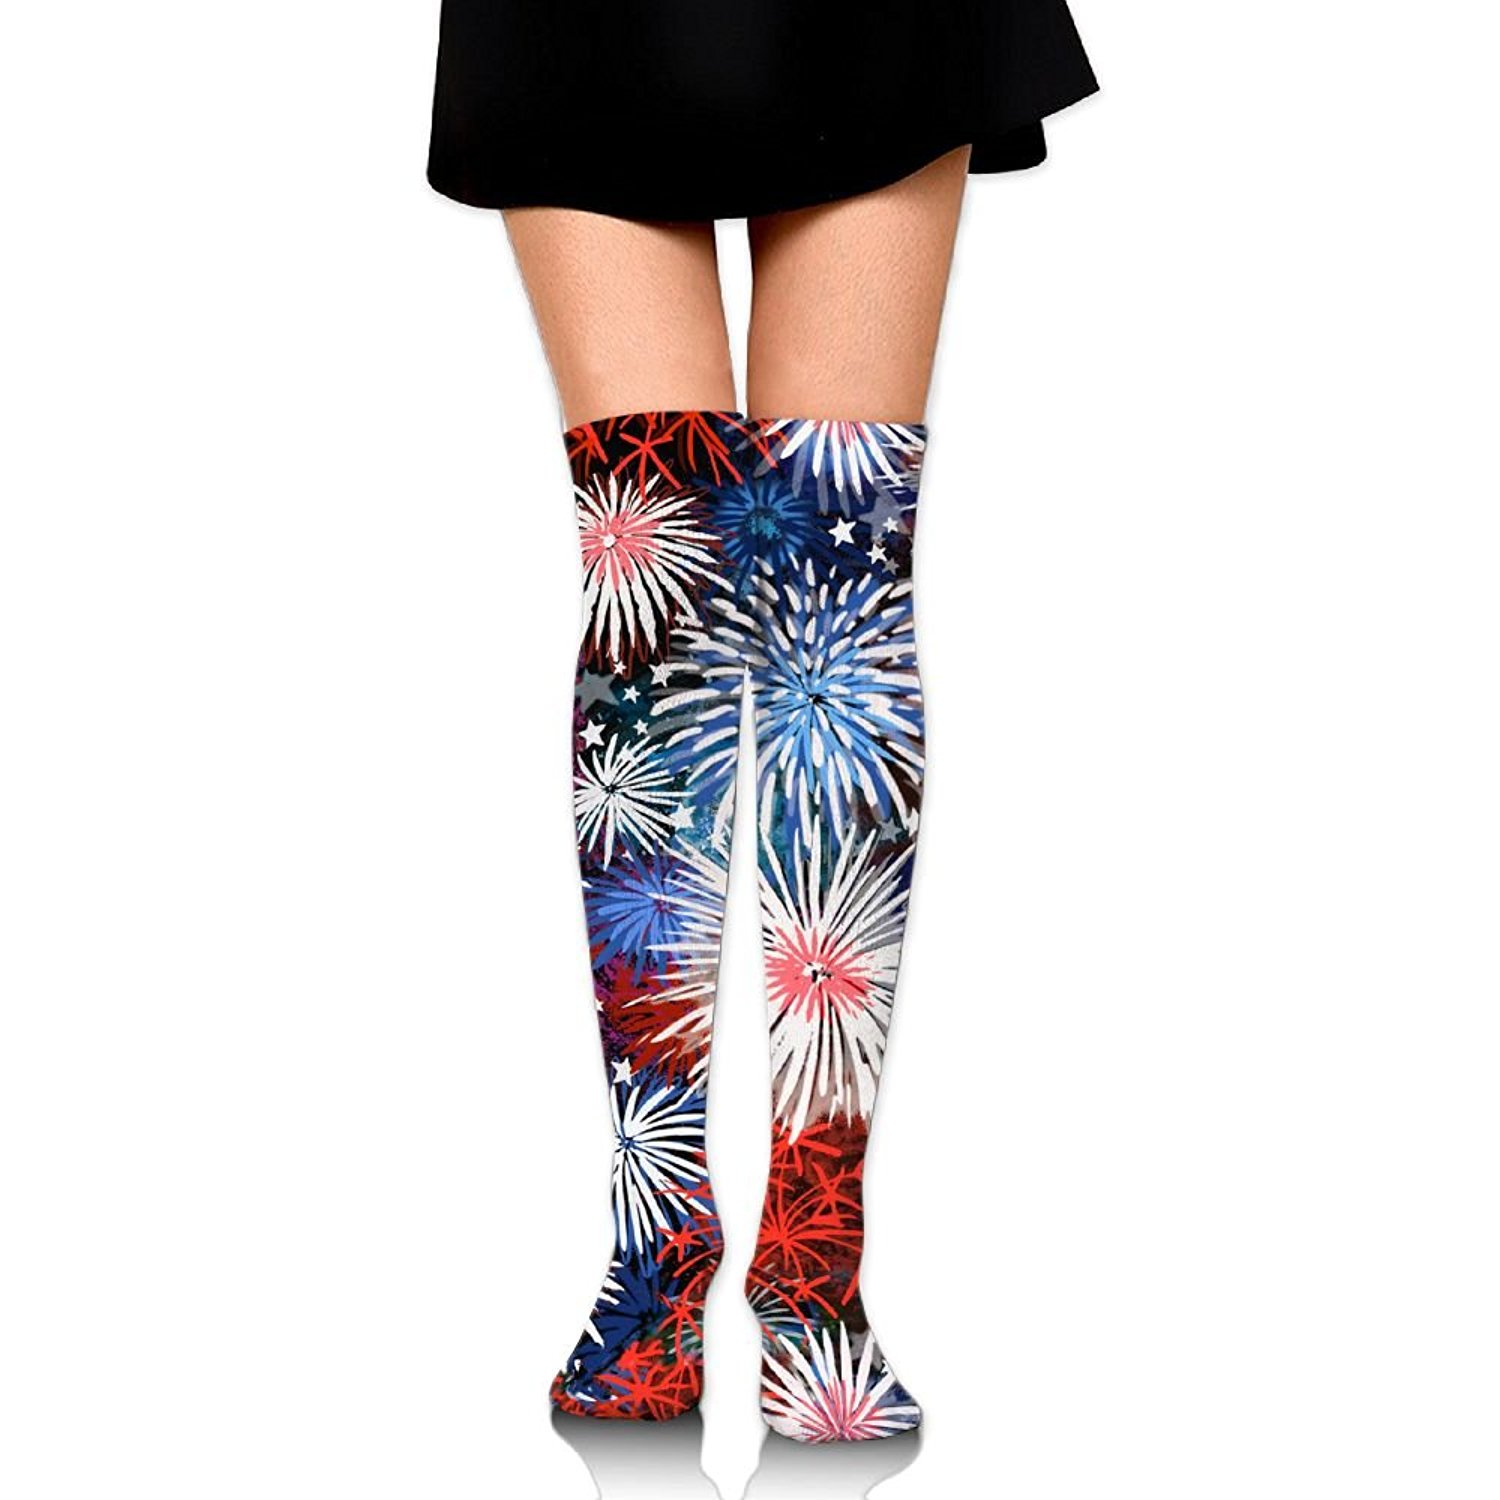 Zaqxsw Fireworks Women Retro Thigh High Socks Cotton Socks For Ladies